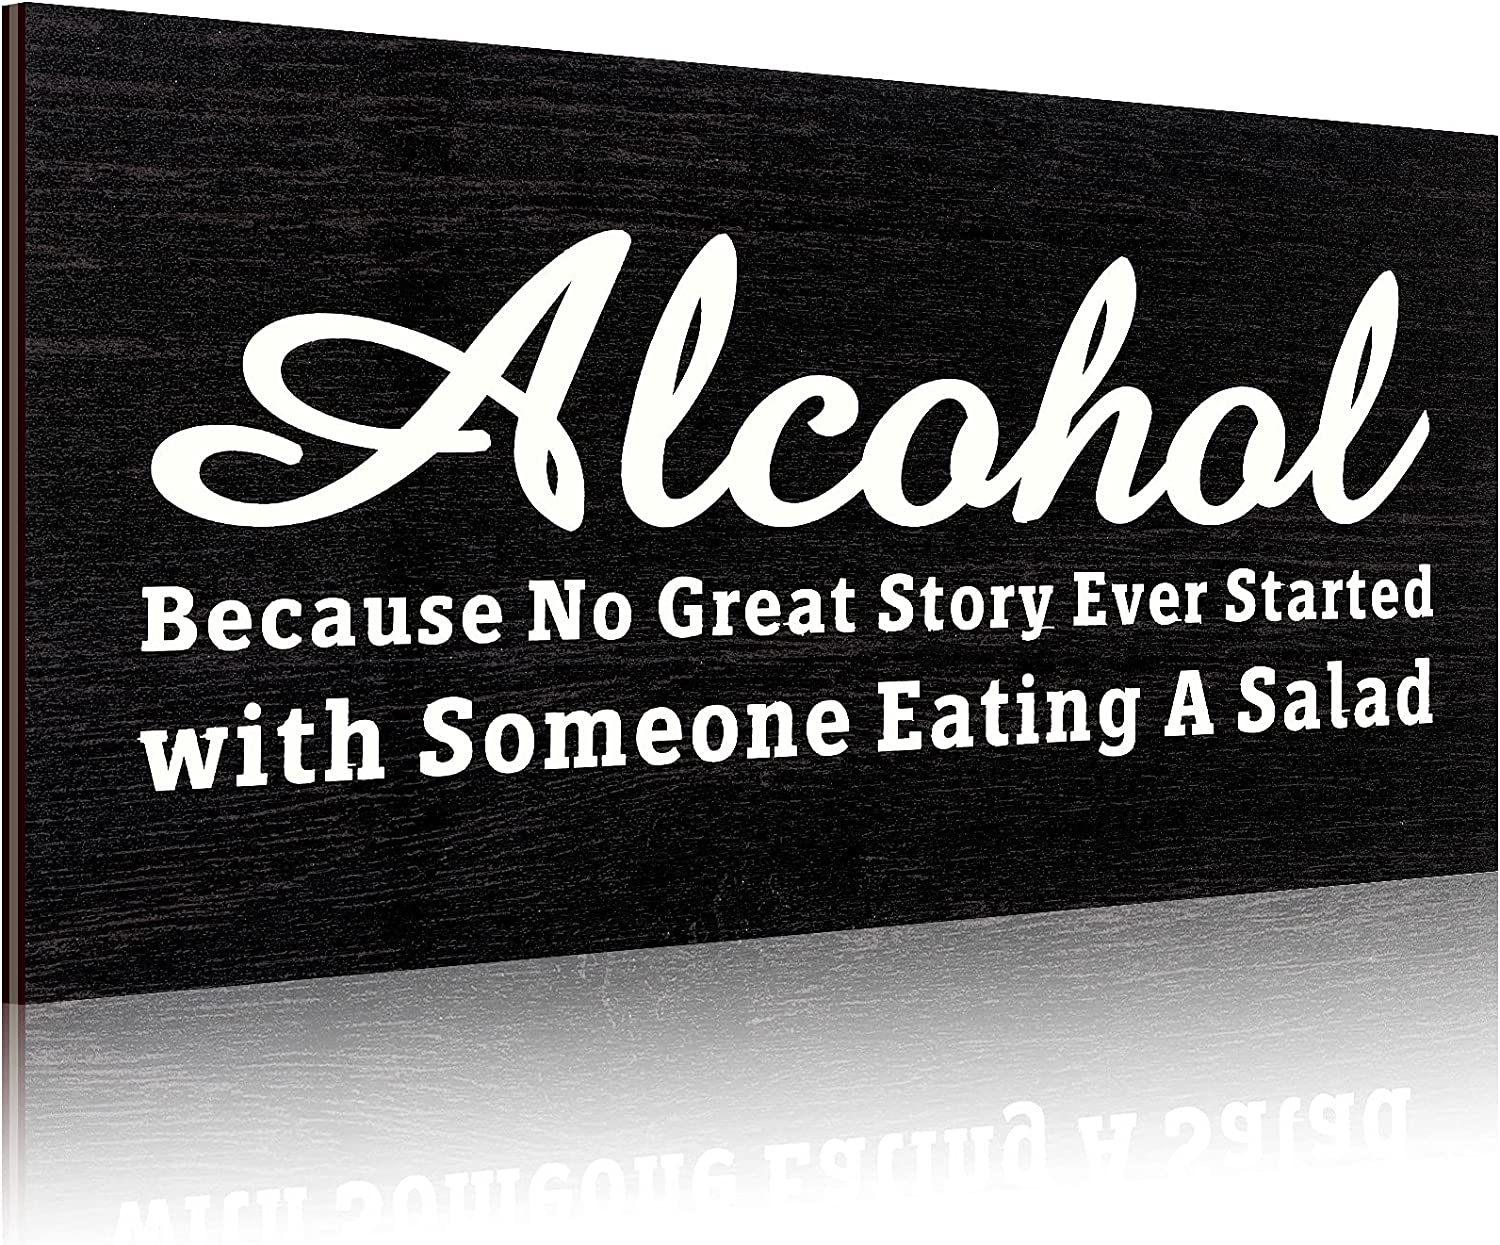 Jetec Alcohol Because No Great Story Ever Started with Someone Eating A Salad Sign Rustic Wooden Sign Funny Alcohol Wall Decor Vintage Primitive Home and Bar Decor